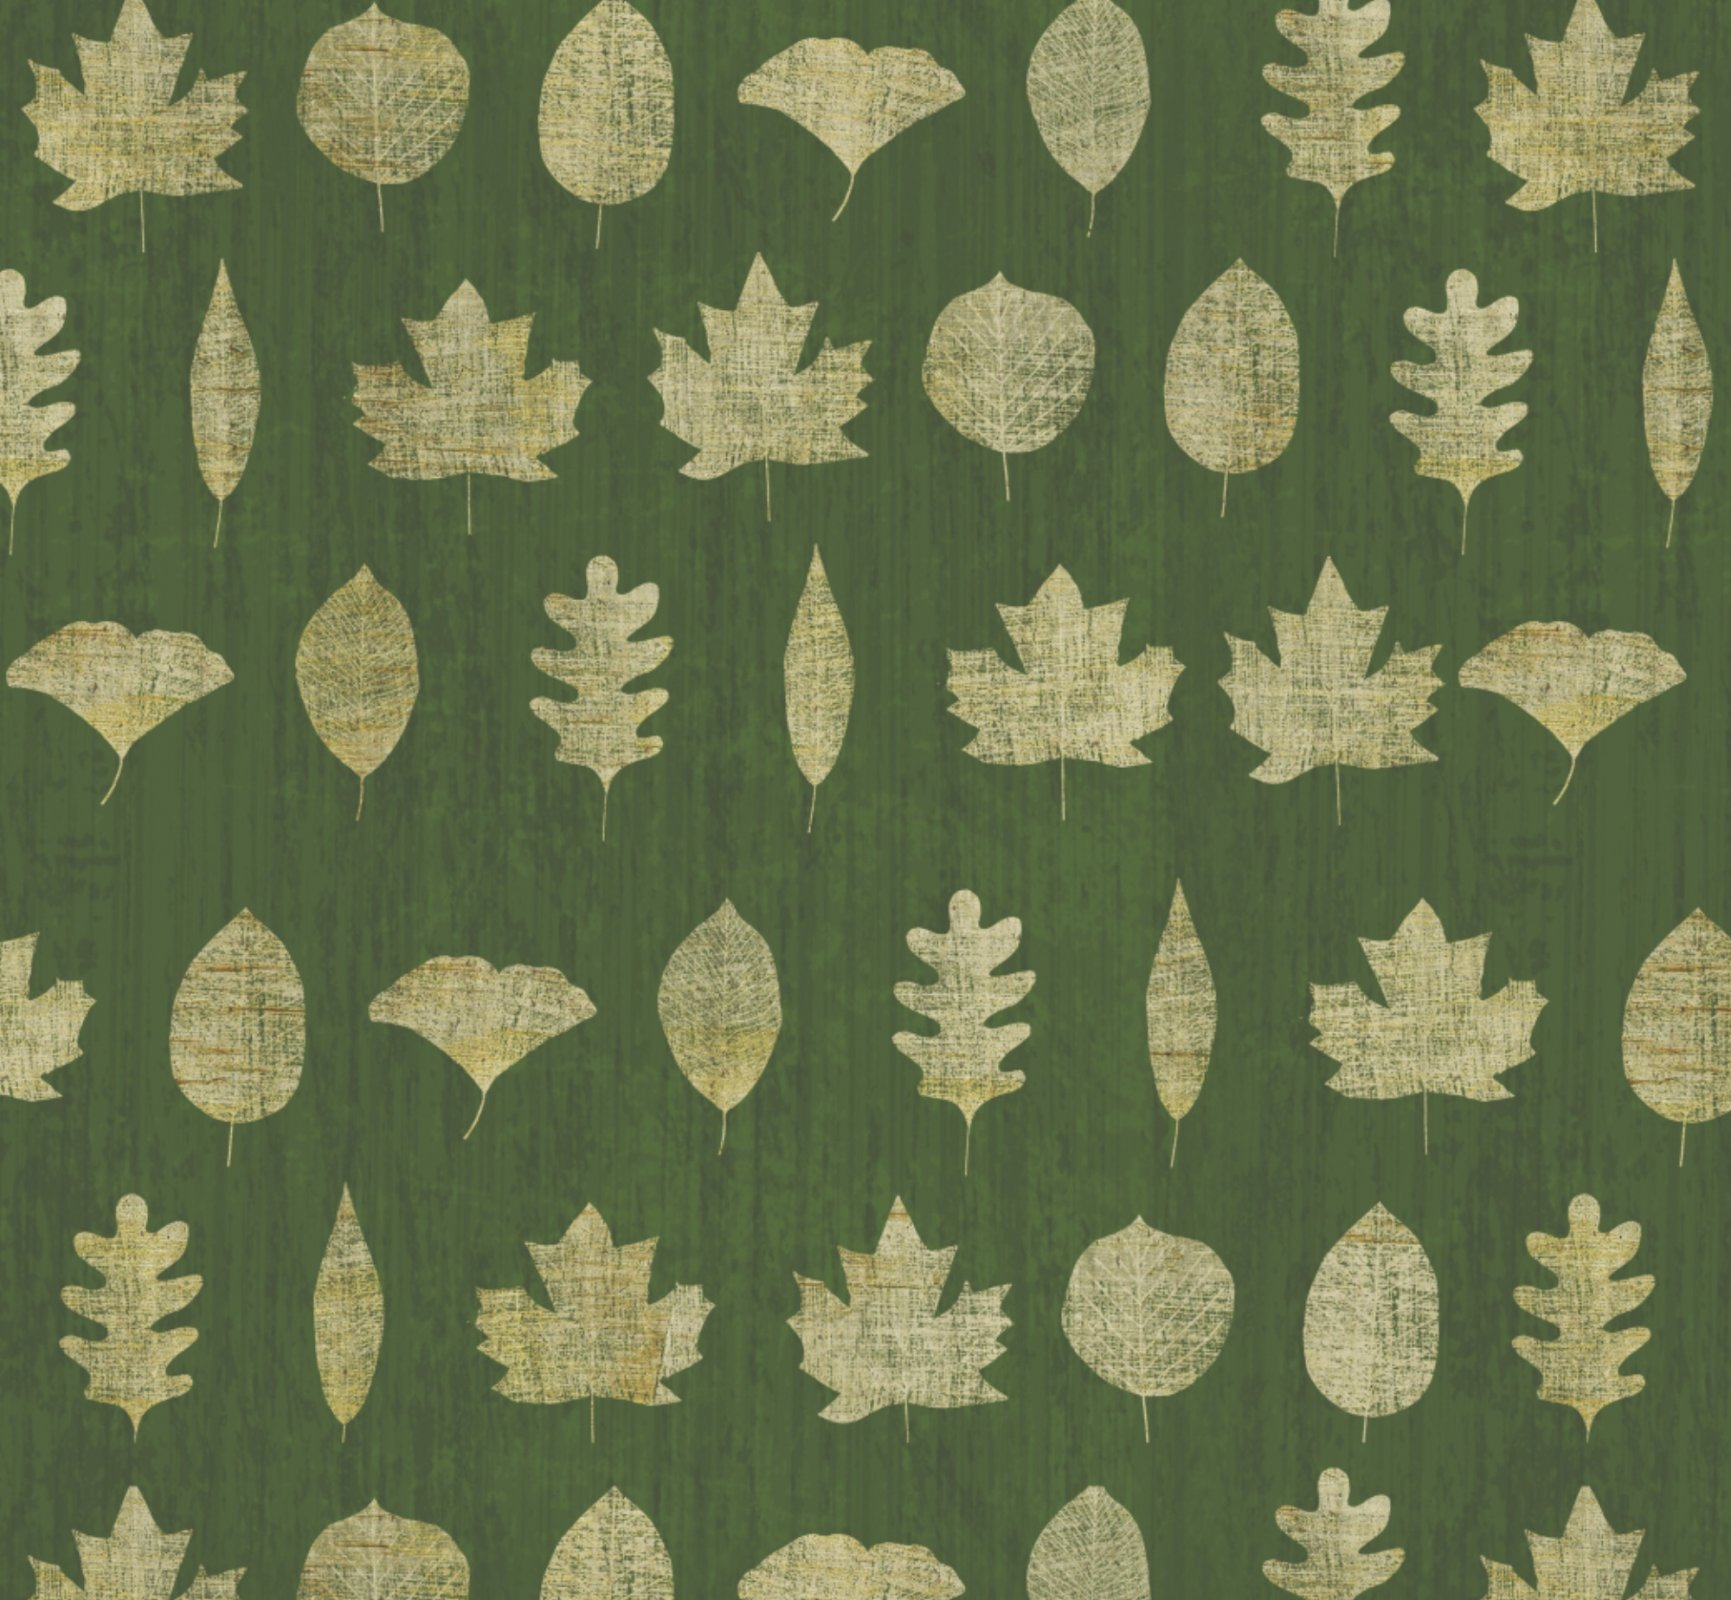 DT-Lakeside Retreat WA-5911-0C-1 Green/Gold - Leaf Silhouettes